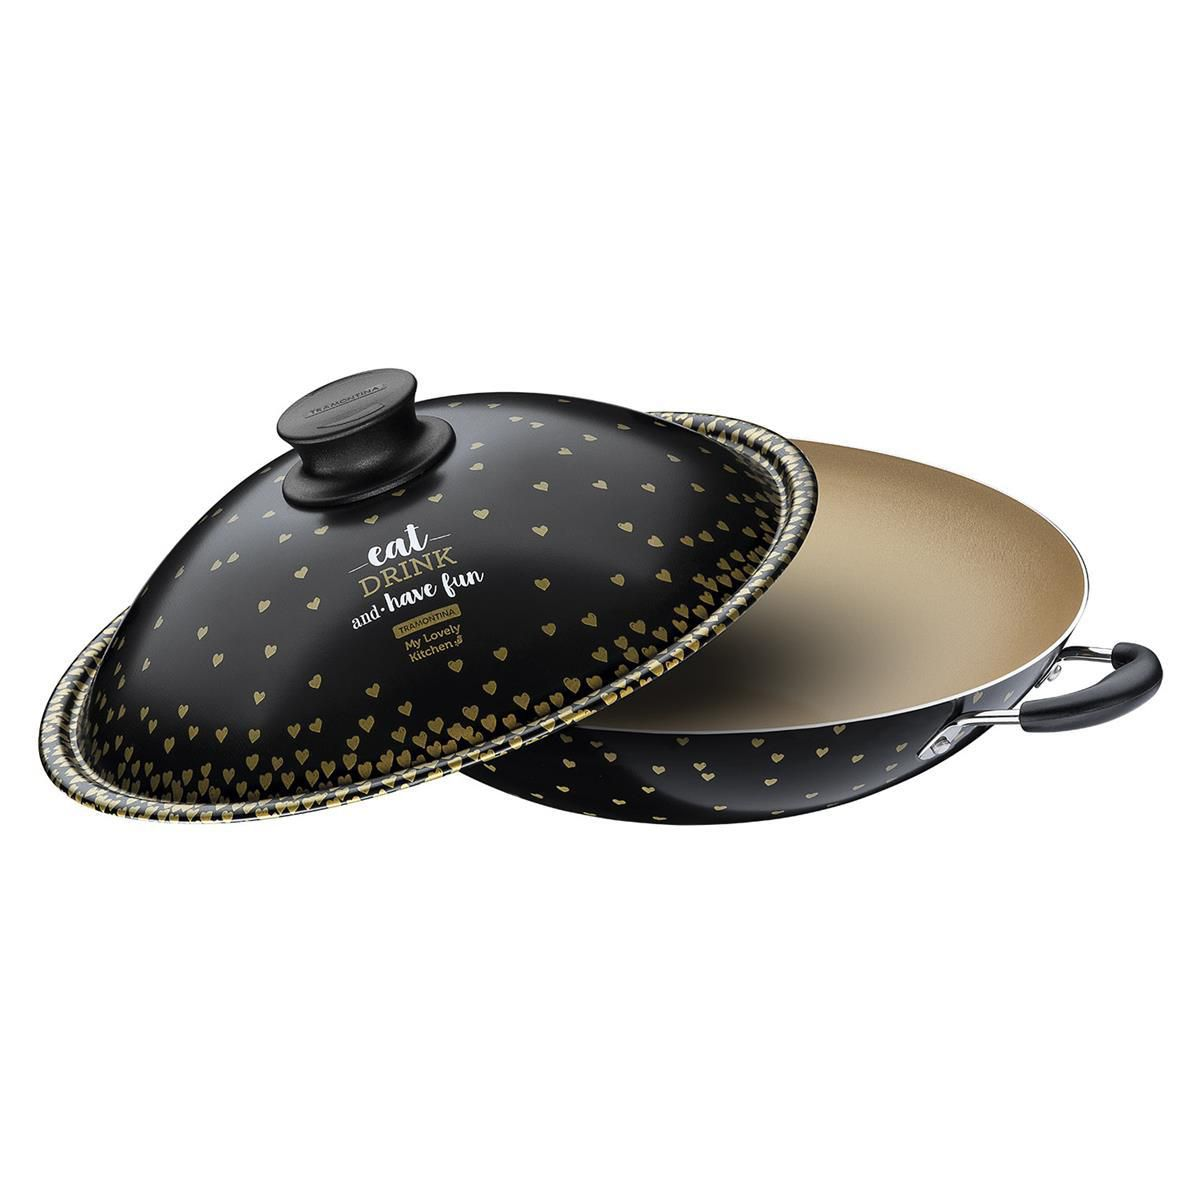 Wok Antiaderente My Lovely Kitchen 32Cm Tramontina